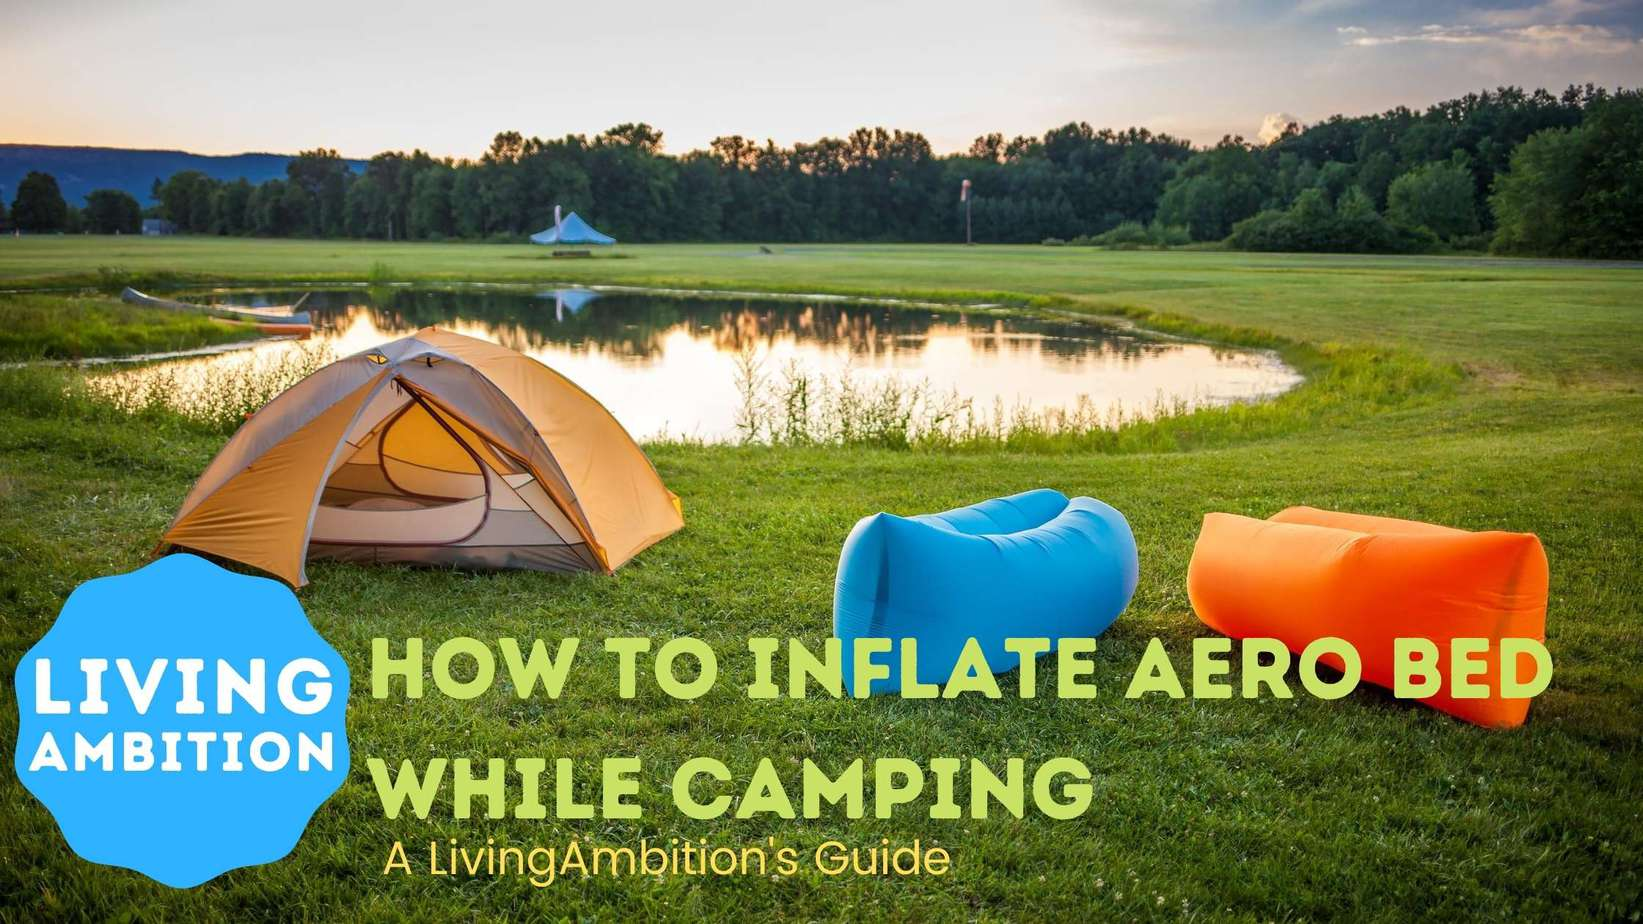 How To Inflate Aero Bed While Camping